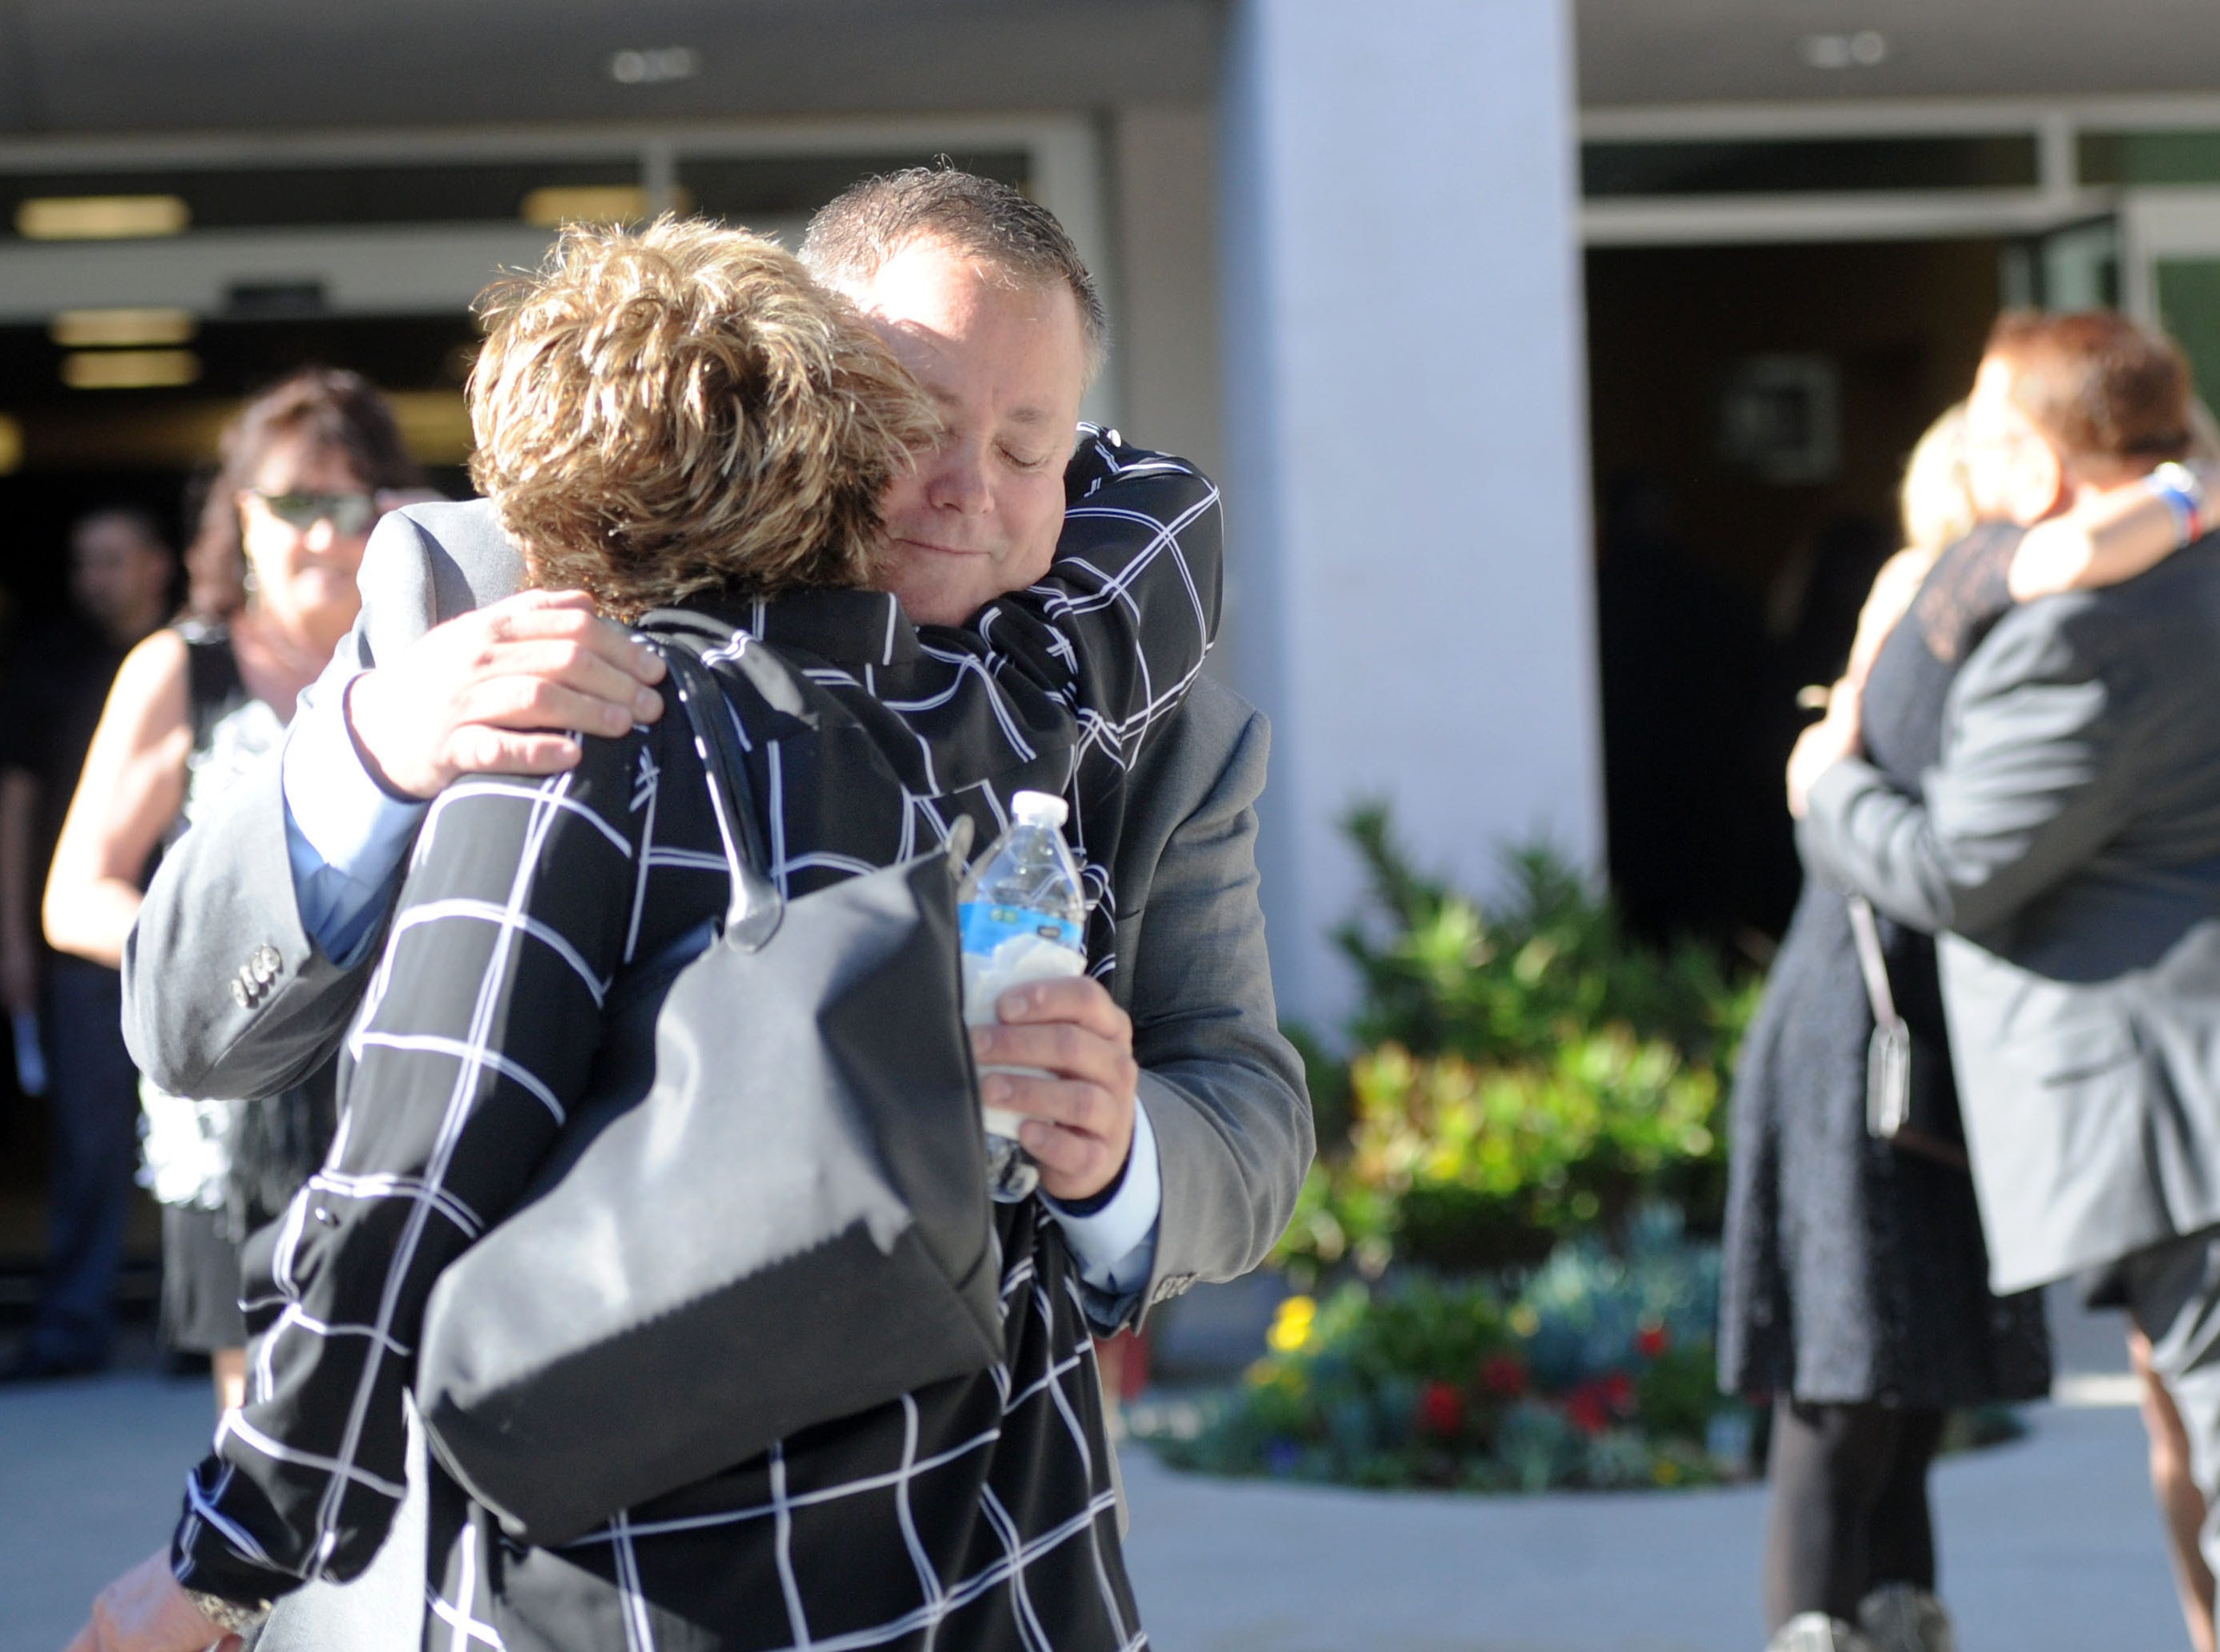 Ken Dunham gets hugs along with his wife, Kathy Dunham, in back, at the start of the memorial service for their son Jake Dunham, one of the Borderline Bar & Grill shooting victims.